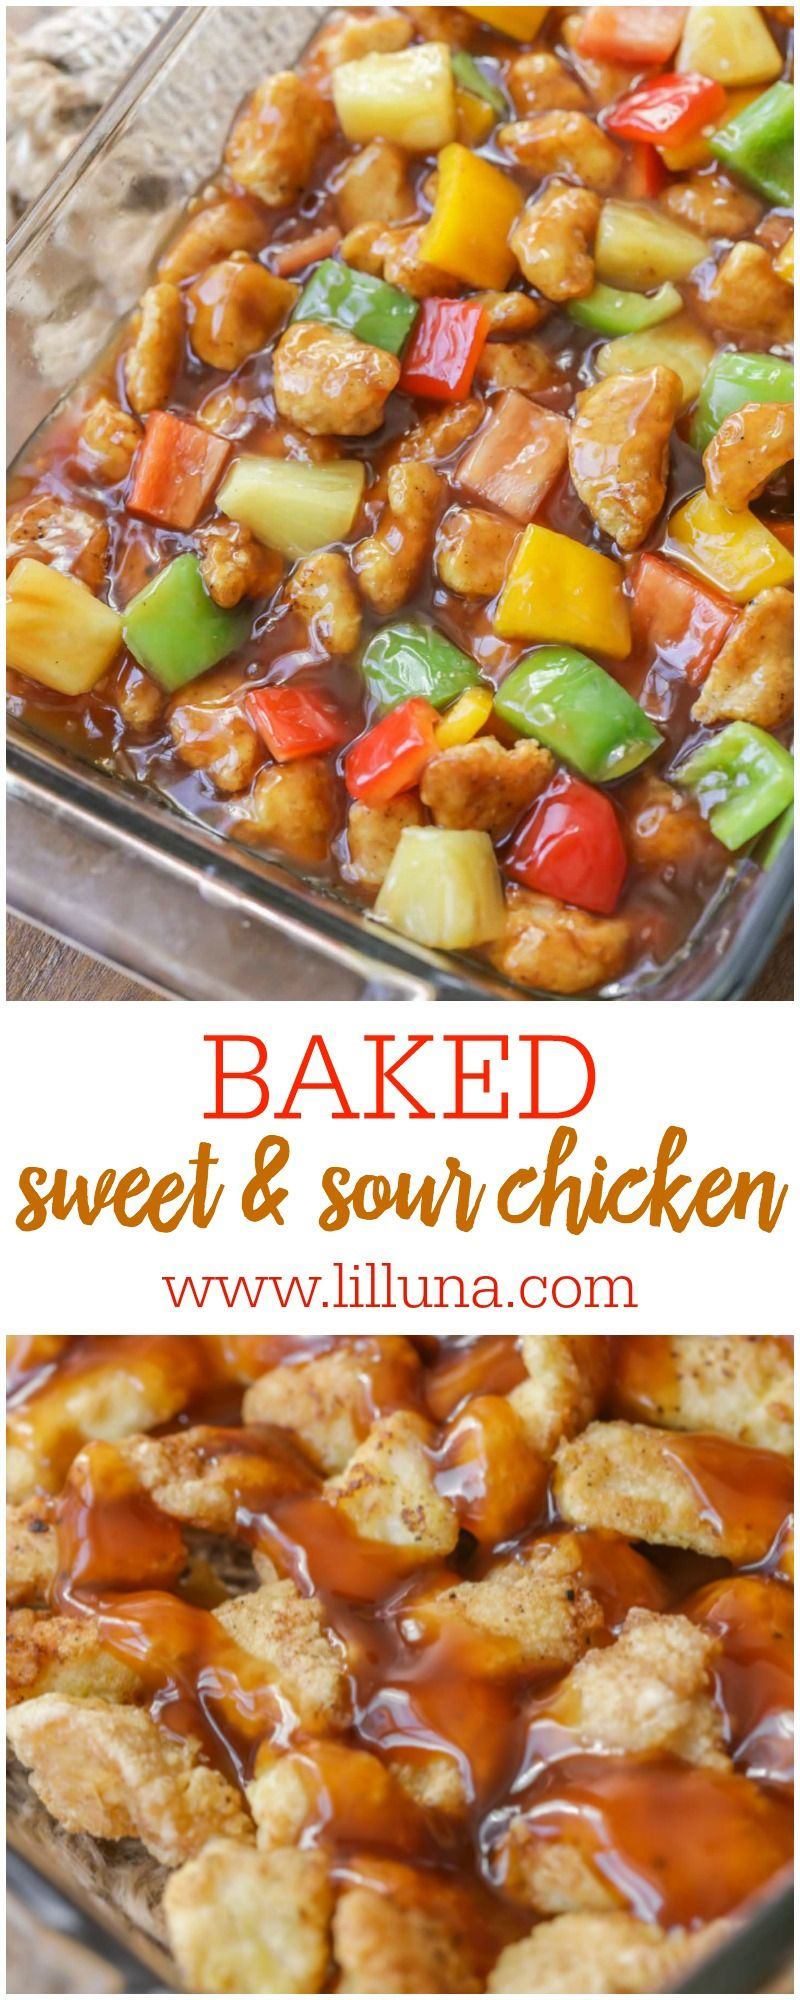 Baked Sweet and Sour Chicken is one of our family's favorite Asian recipes! There is so much flavor with the sauce, pineapples and peppers. Just with rice or noodles to complete this flavorful dish!